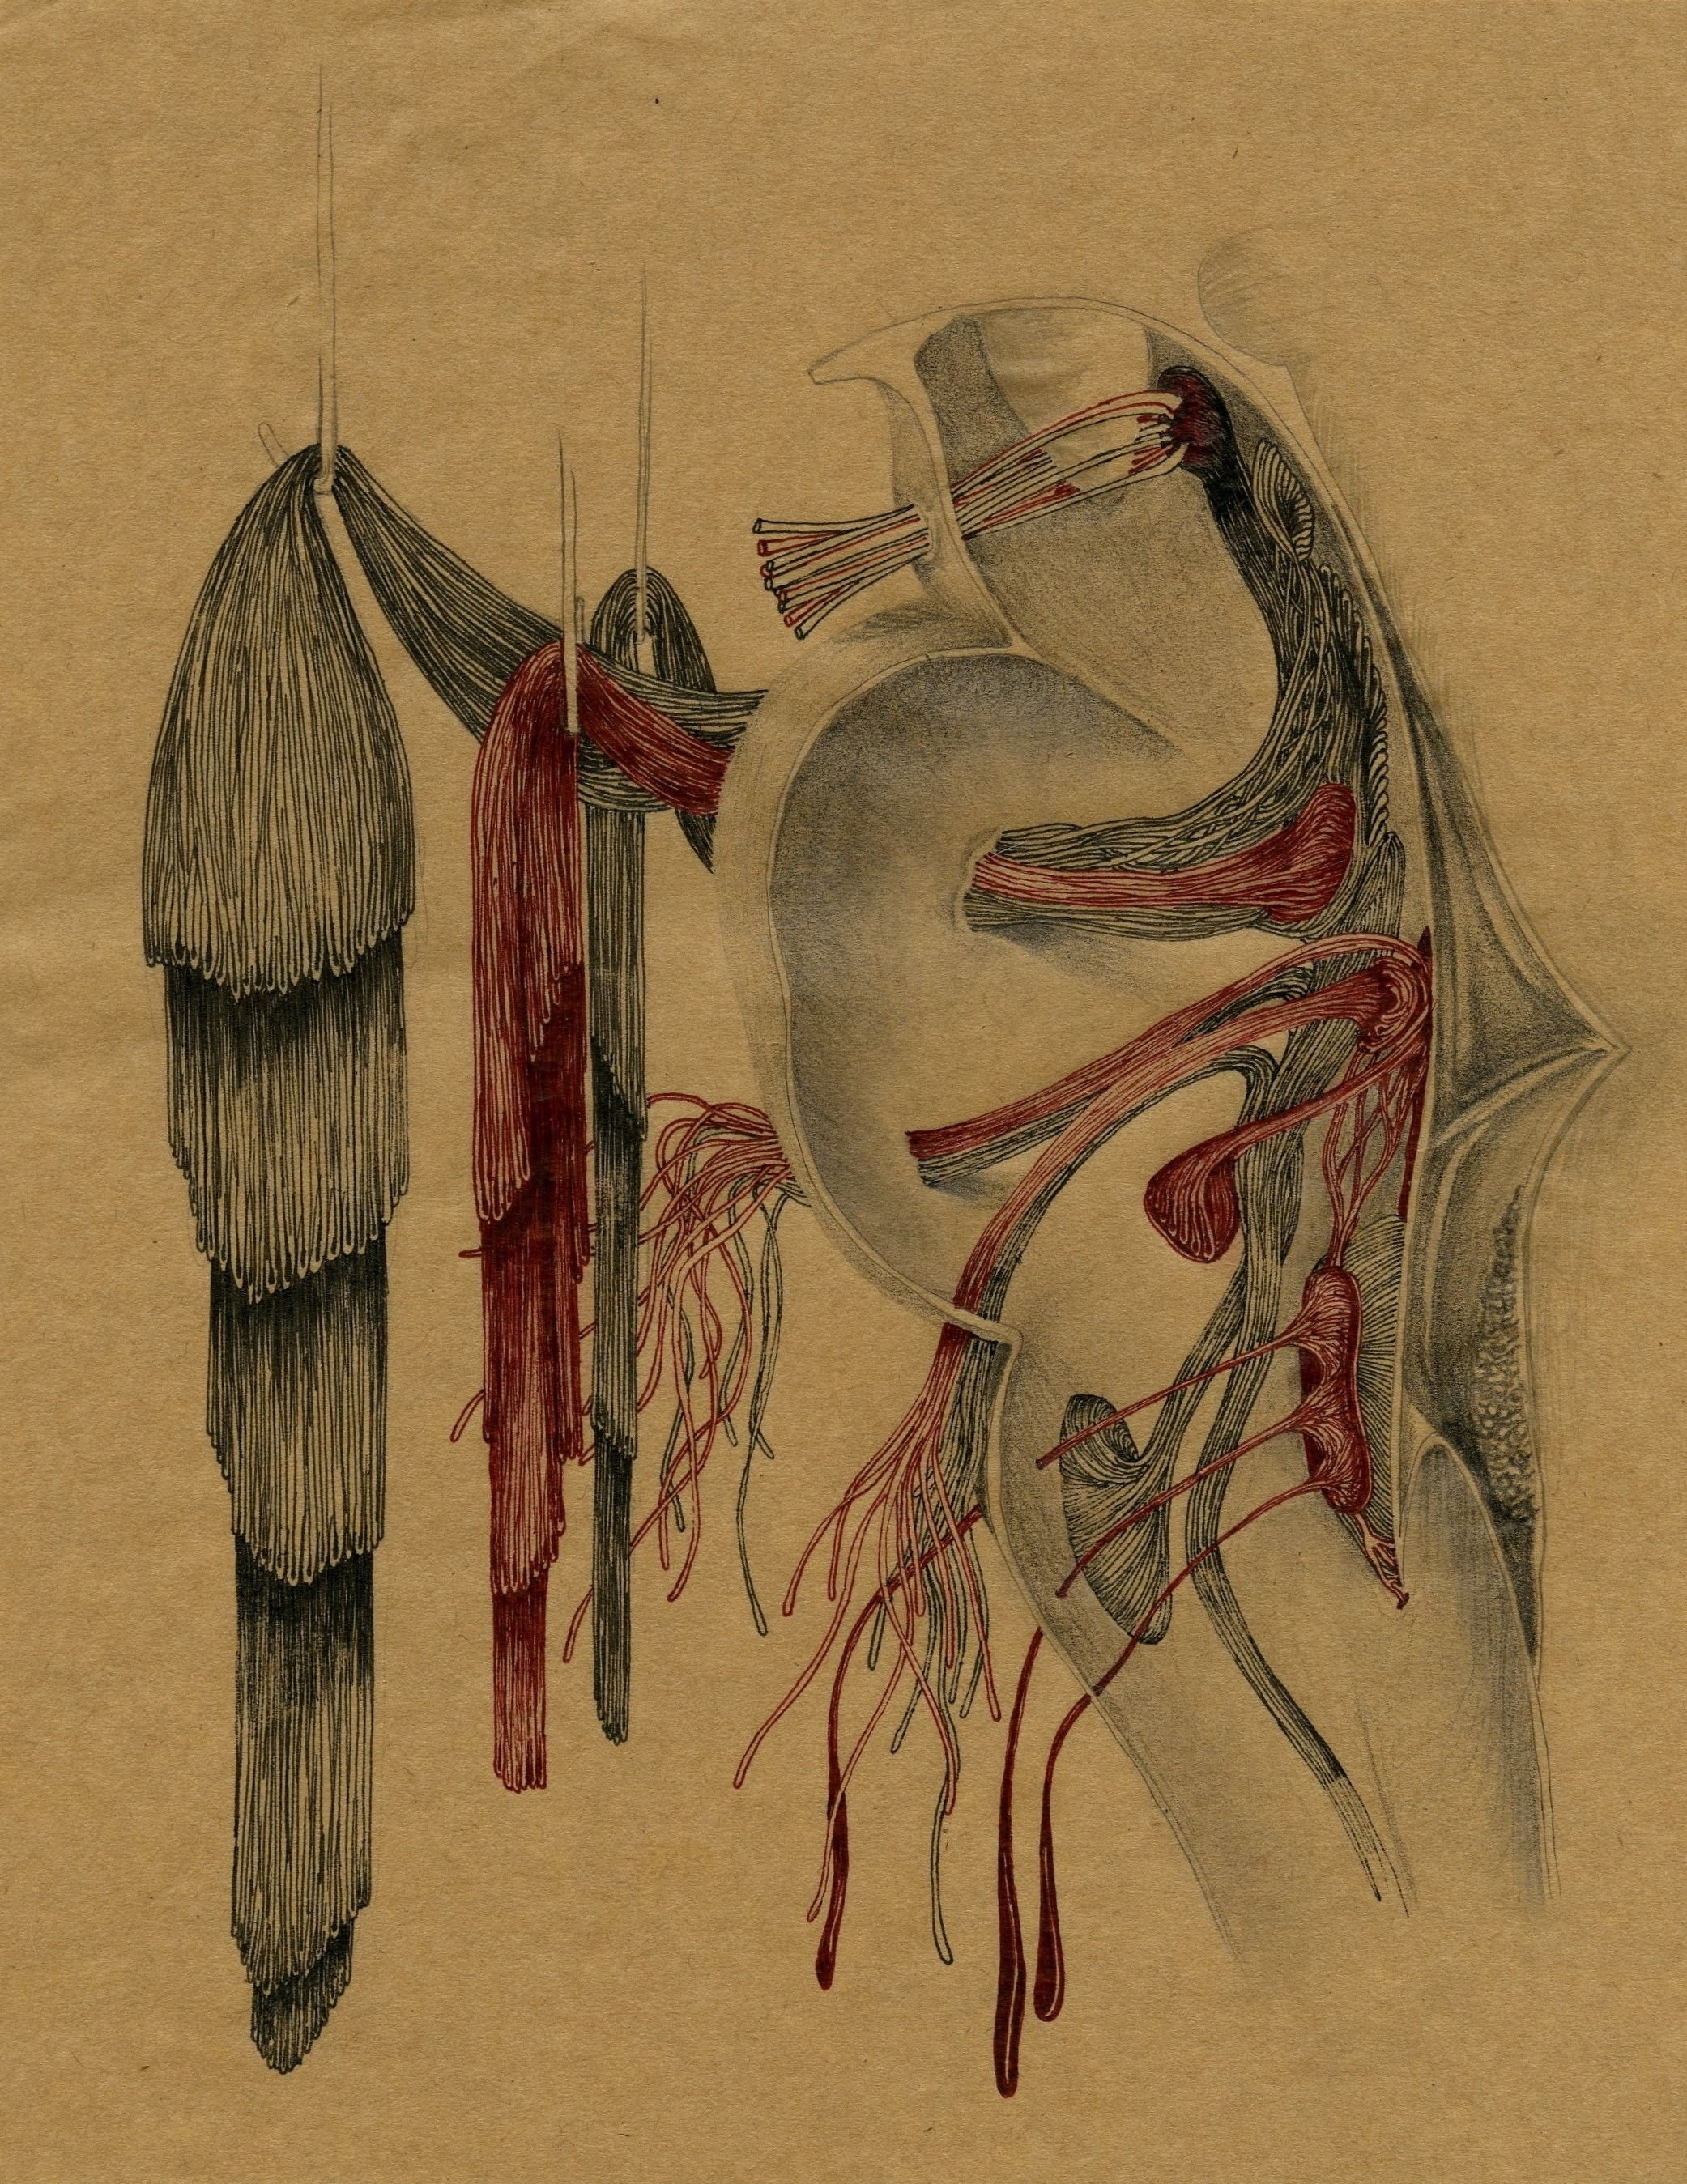 S.título ( anca ) , original Body Paper Drawing and Illustration by Lucy  Valente Pereira